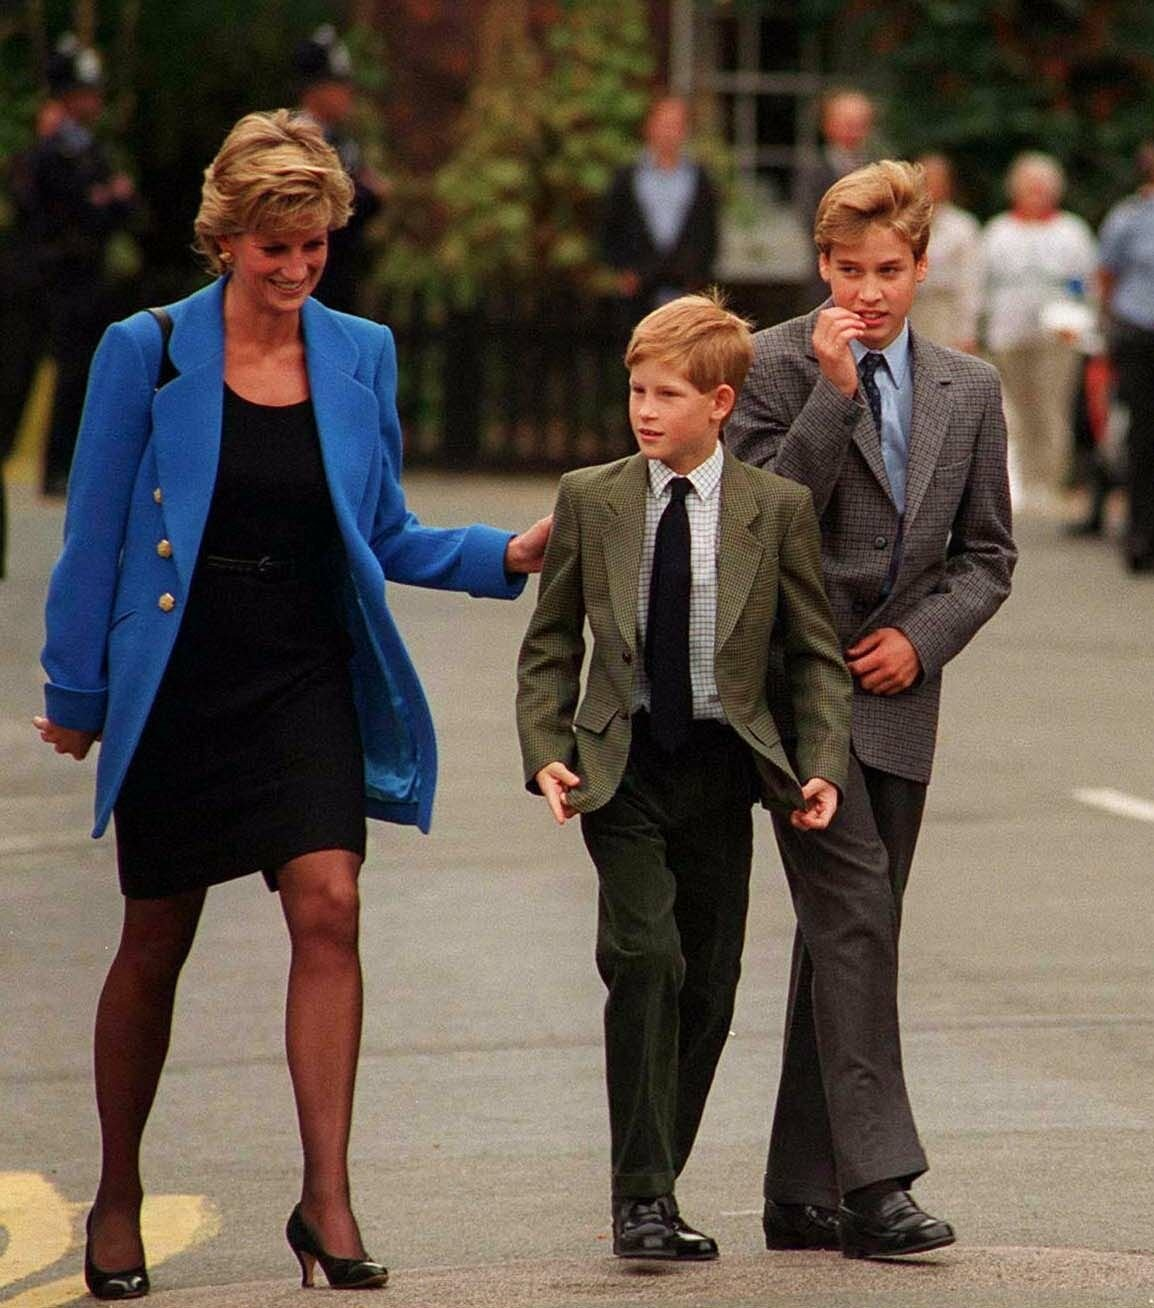 Prince William arrives with Princess Diana and Prince Harry for his first day at Eton College on September 16, 1995 in Windsor, England | Source: Getty Images